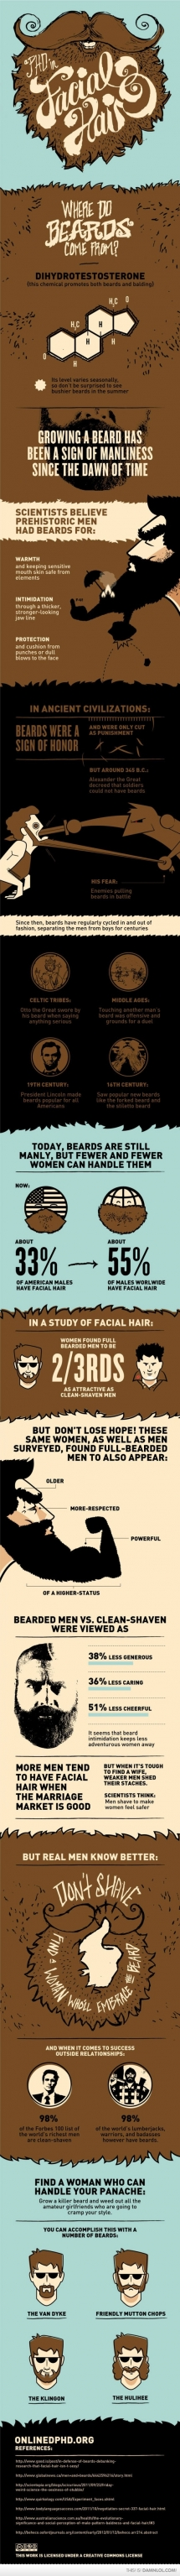 A PHD in Facial Hair - Funny but True